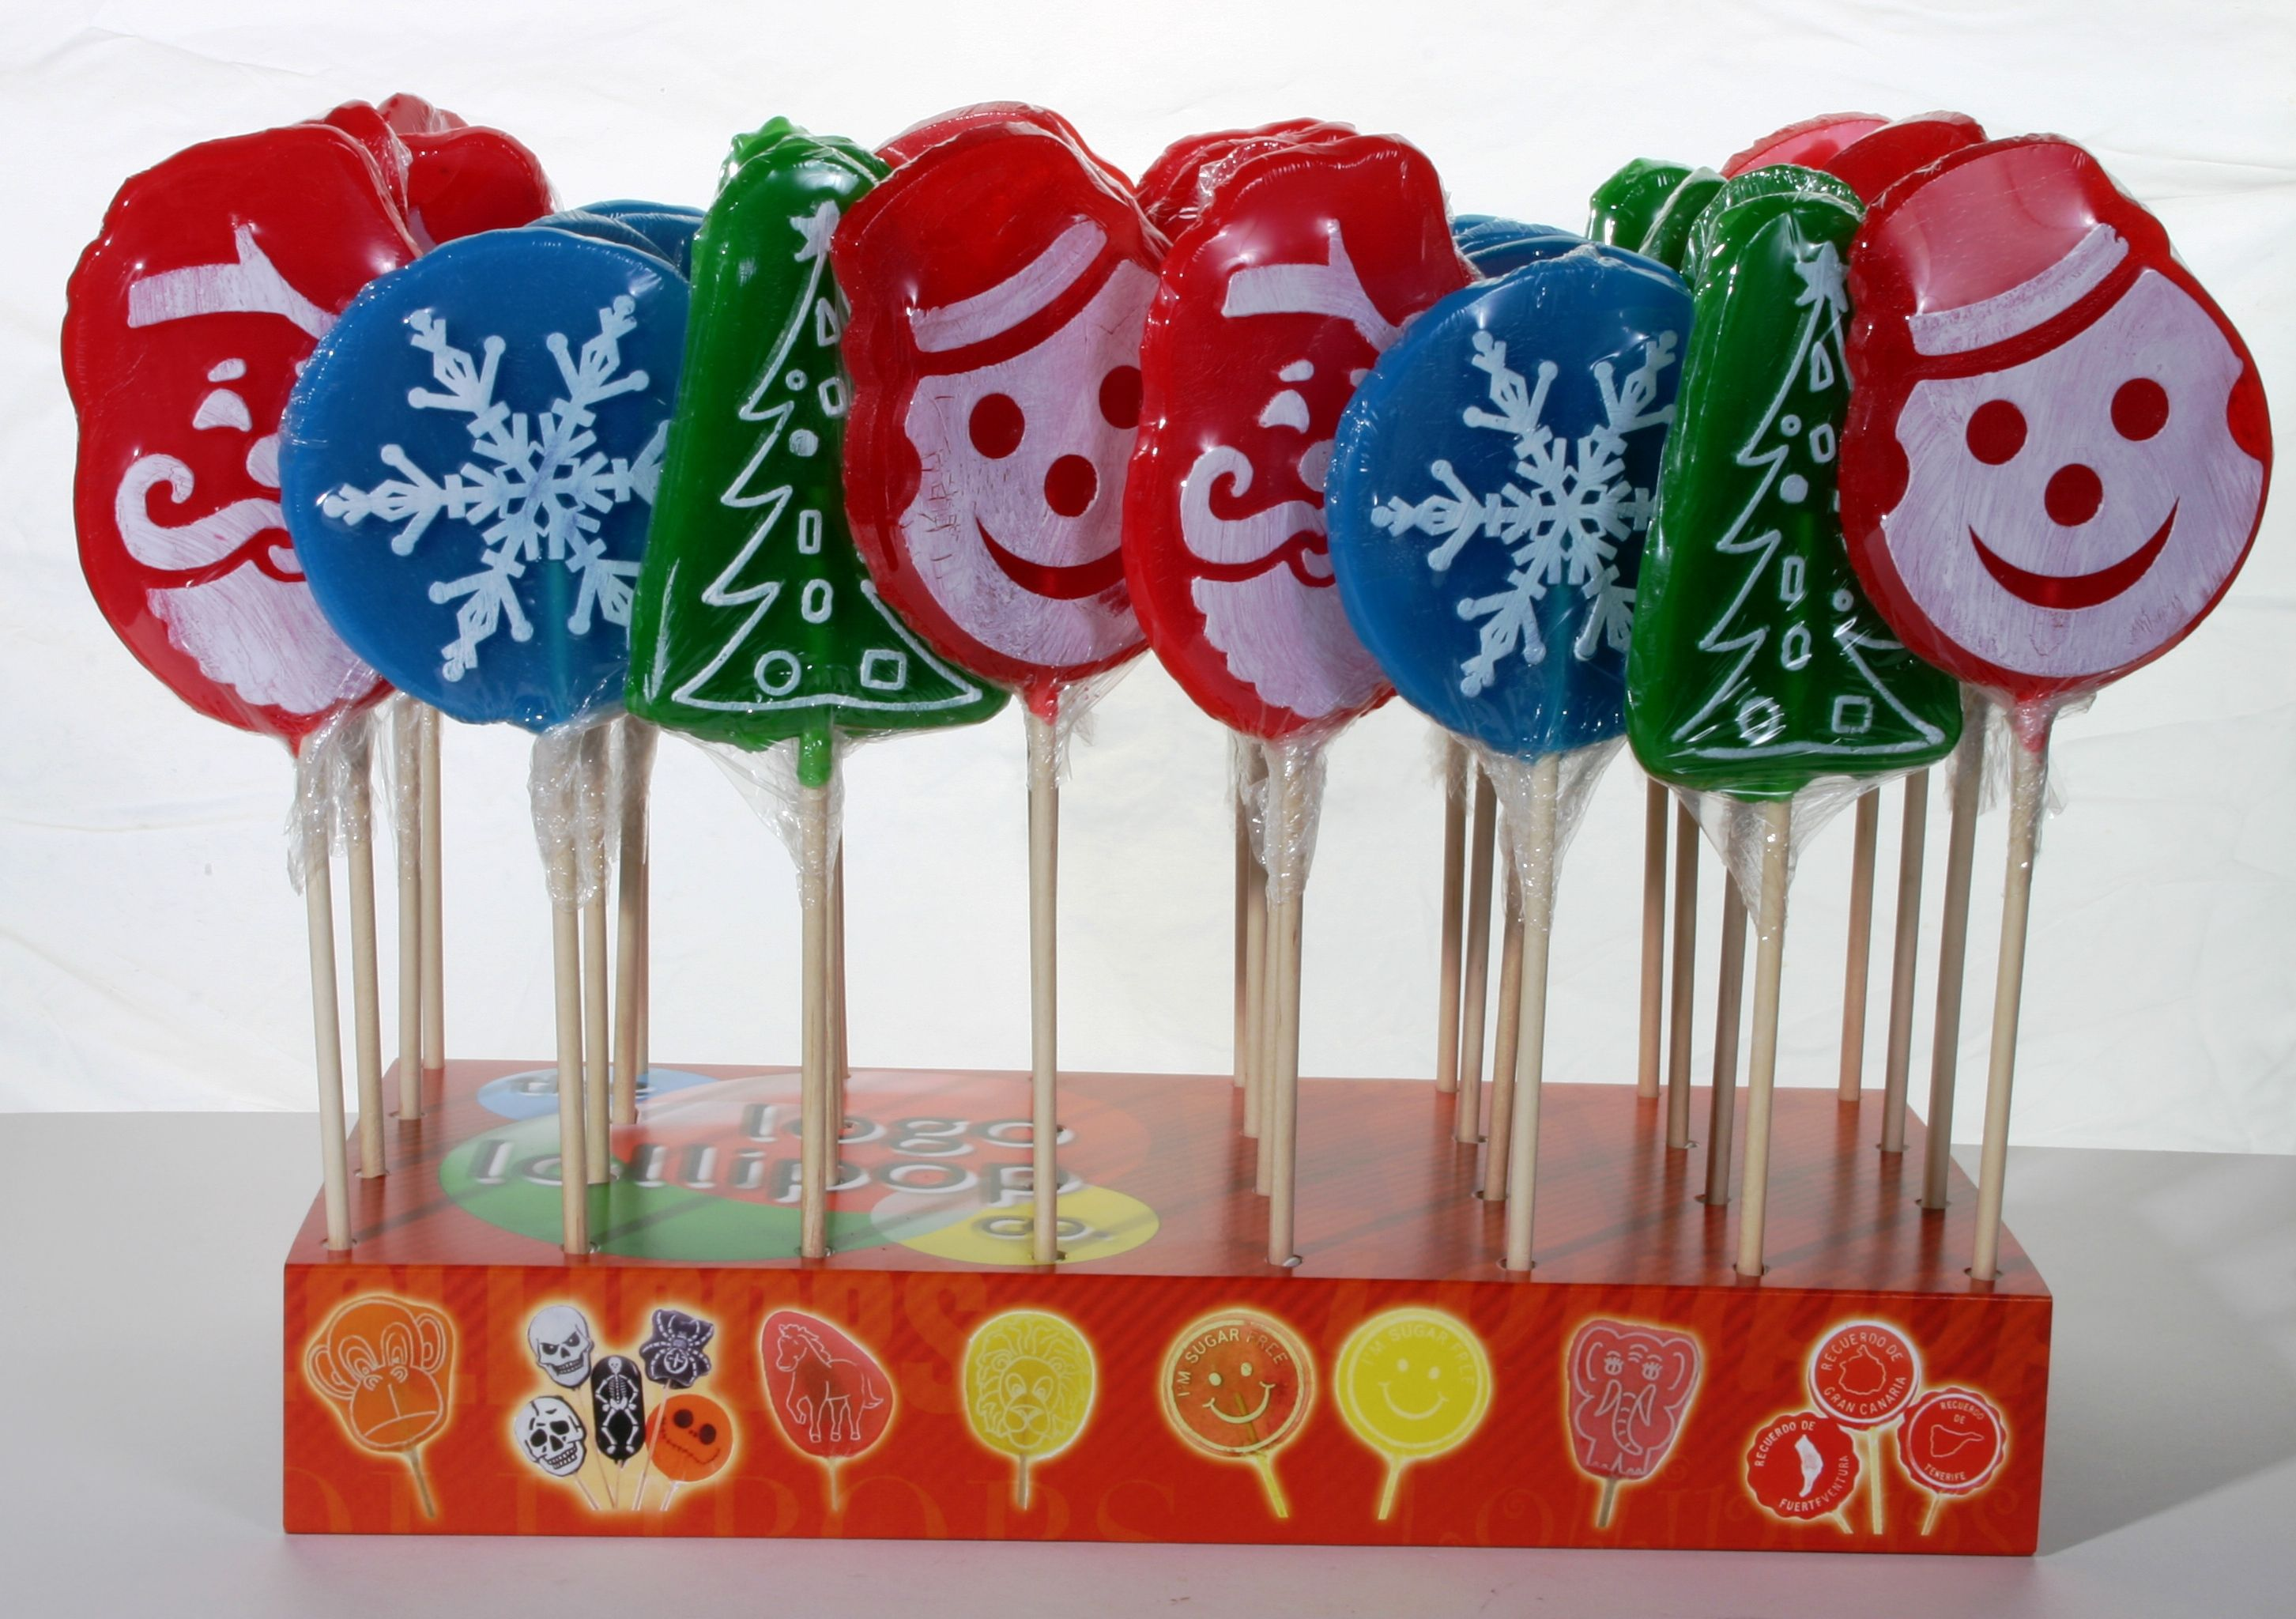 A selection of our Christmas-themed Logo Lollipops. Christmas lollies, rock candy, favours, personalized sweets, sweets, rock sweets, customizable candy, sweet shop, sweetie, Bonbonnier, party sweets, hard candy, unique gift, candy buffet, candy table, treats, lollipops